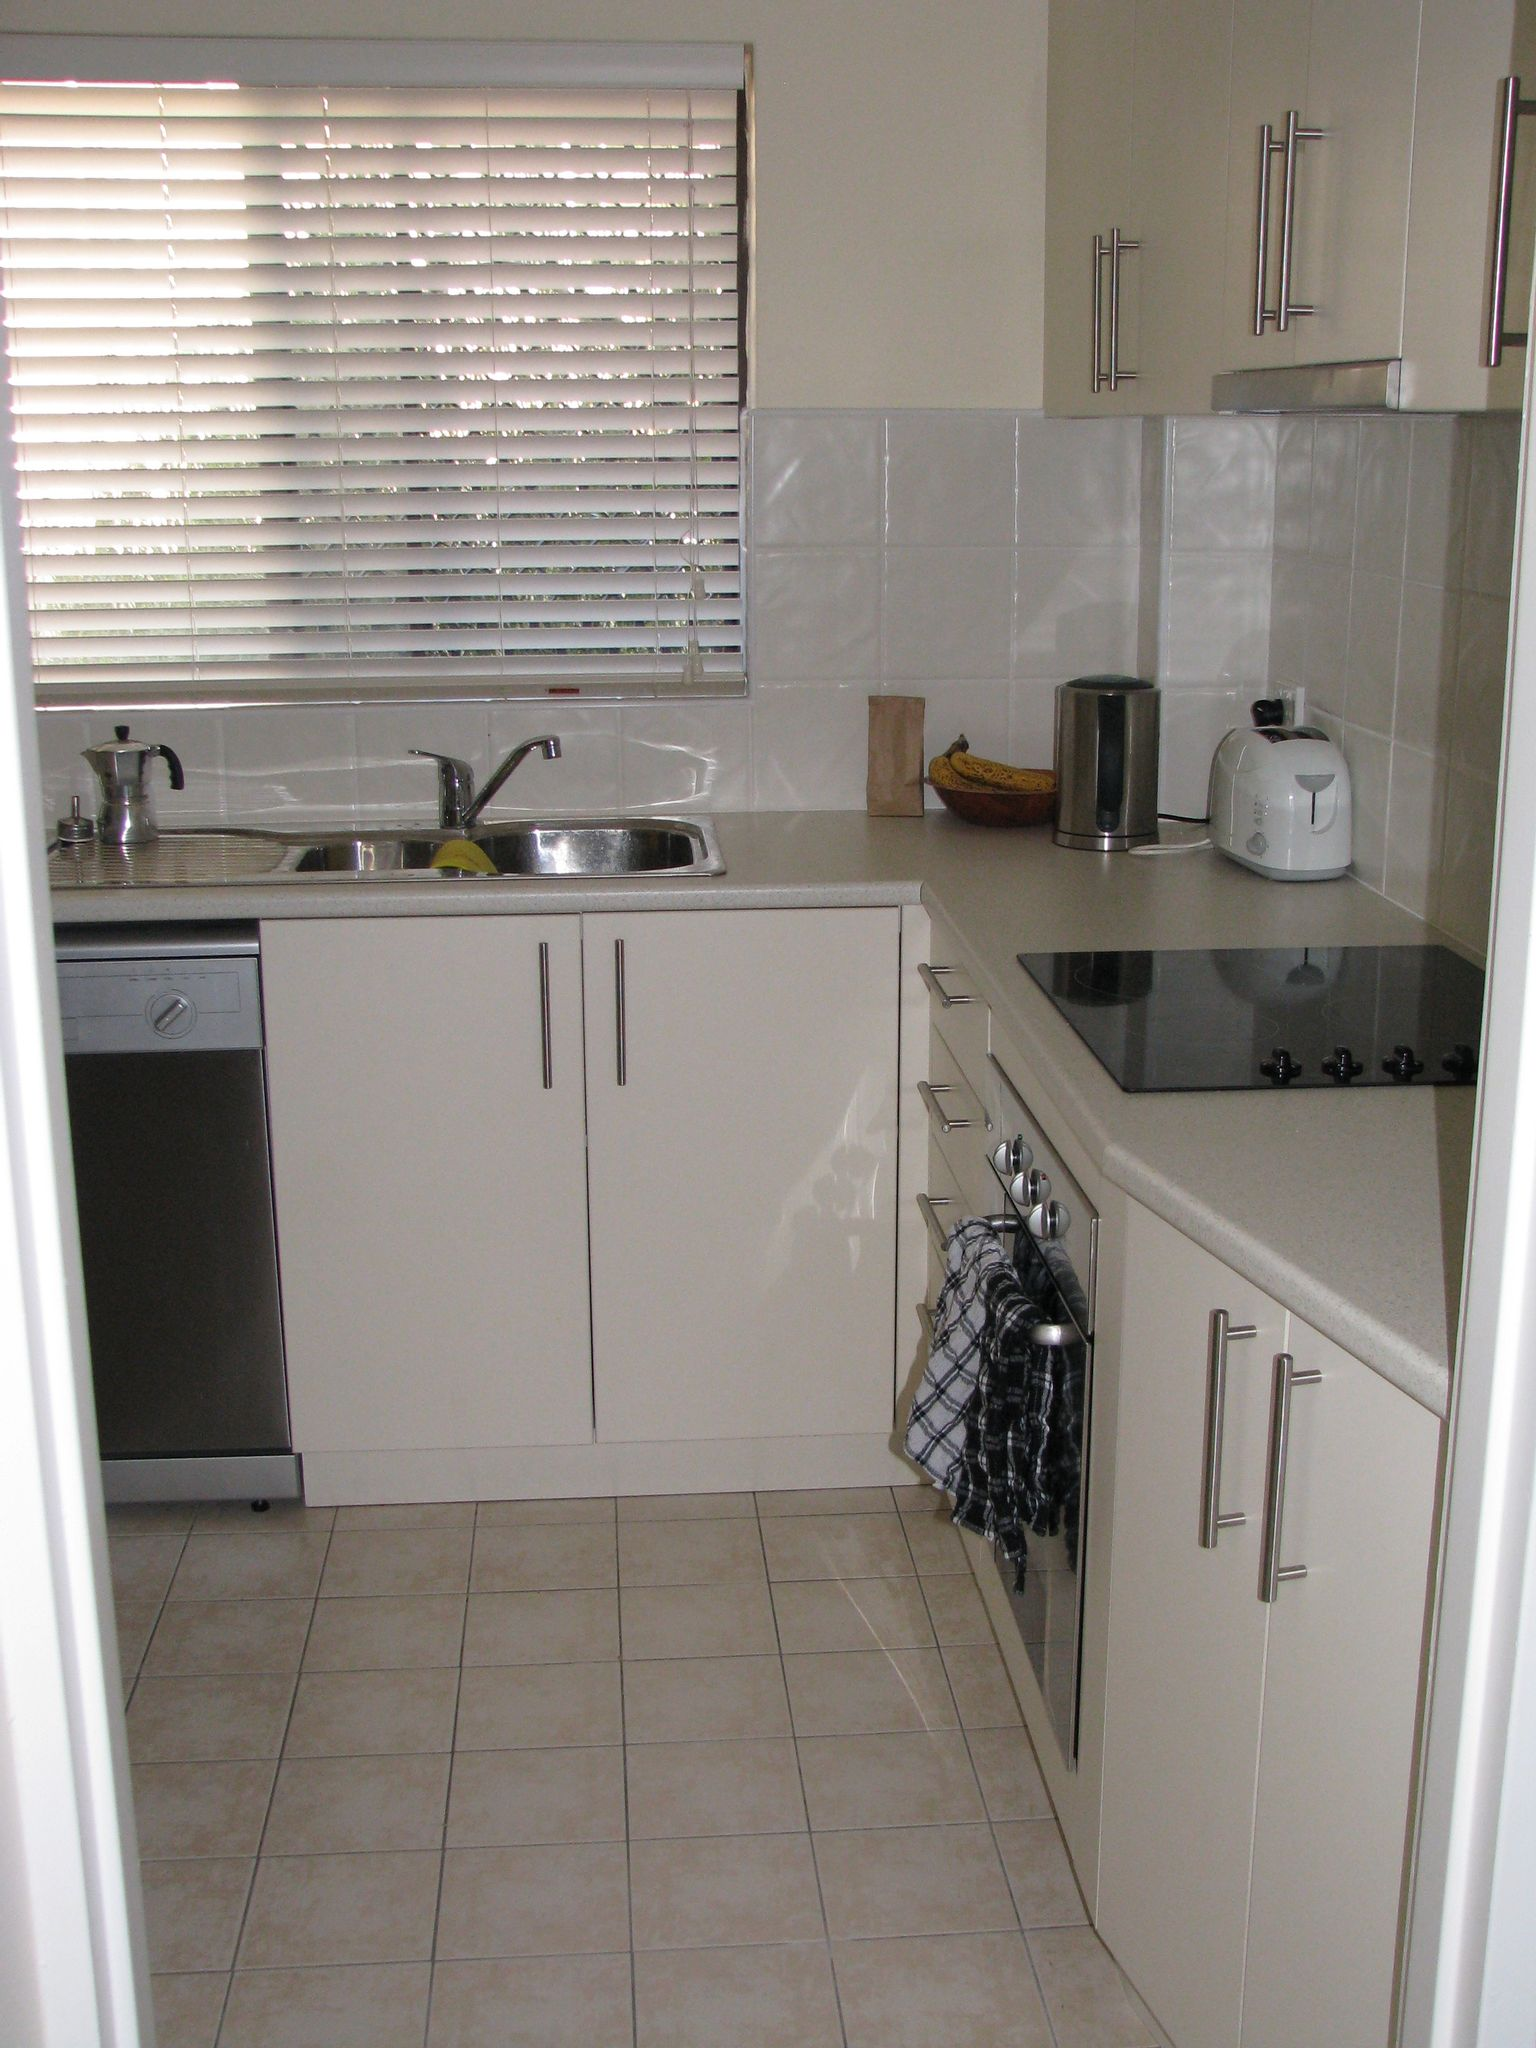 A photo looking into the kitchen from outside the doorway. The cupboards are cream coloured, there's a ceramic cooktop on the bench at the right, the sink is facing the doorway, and there's a dishwasher just visible to the left of the sink.